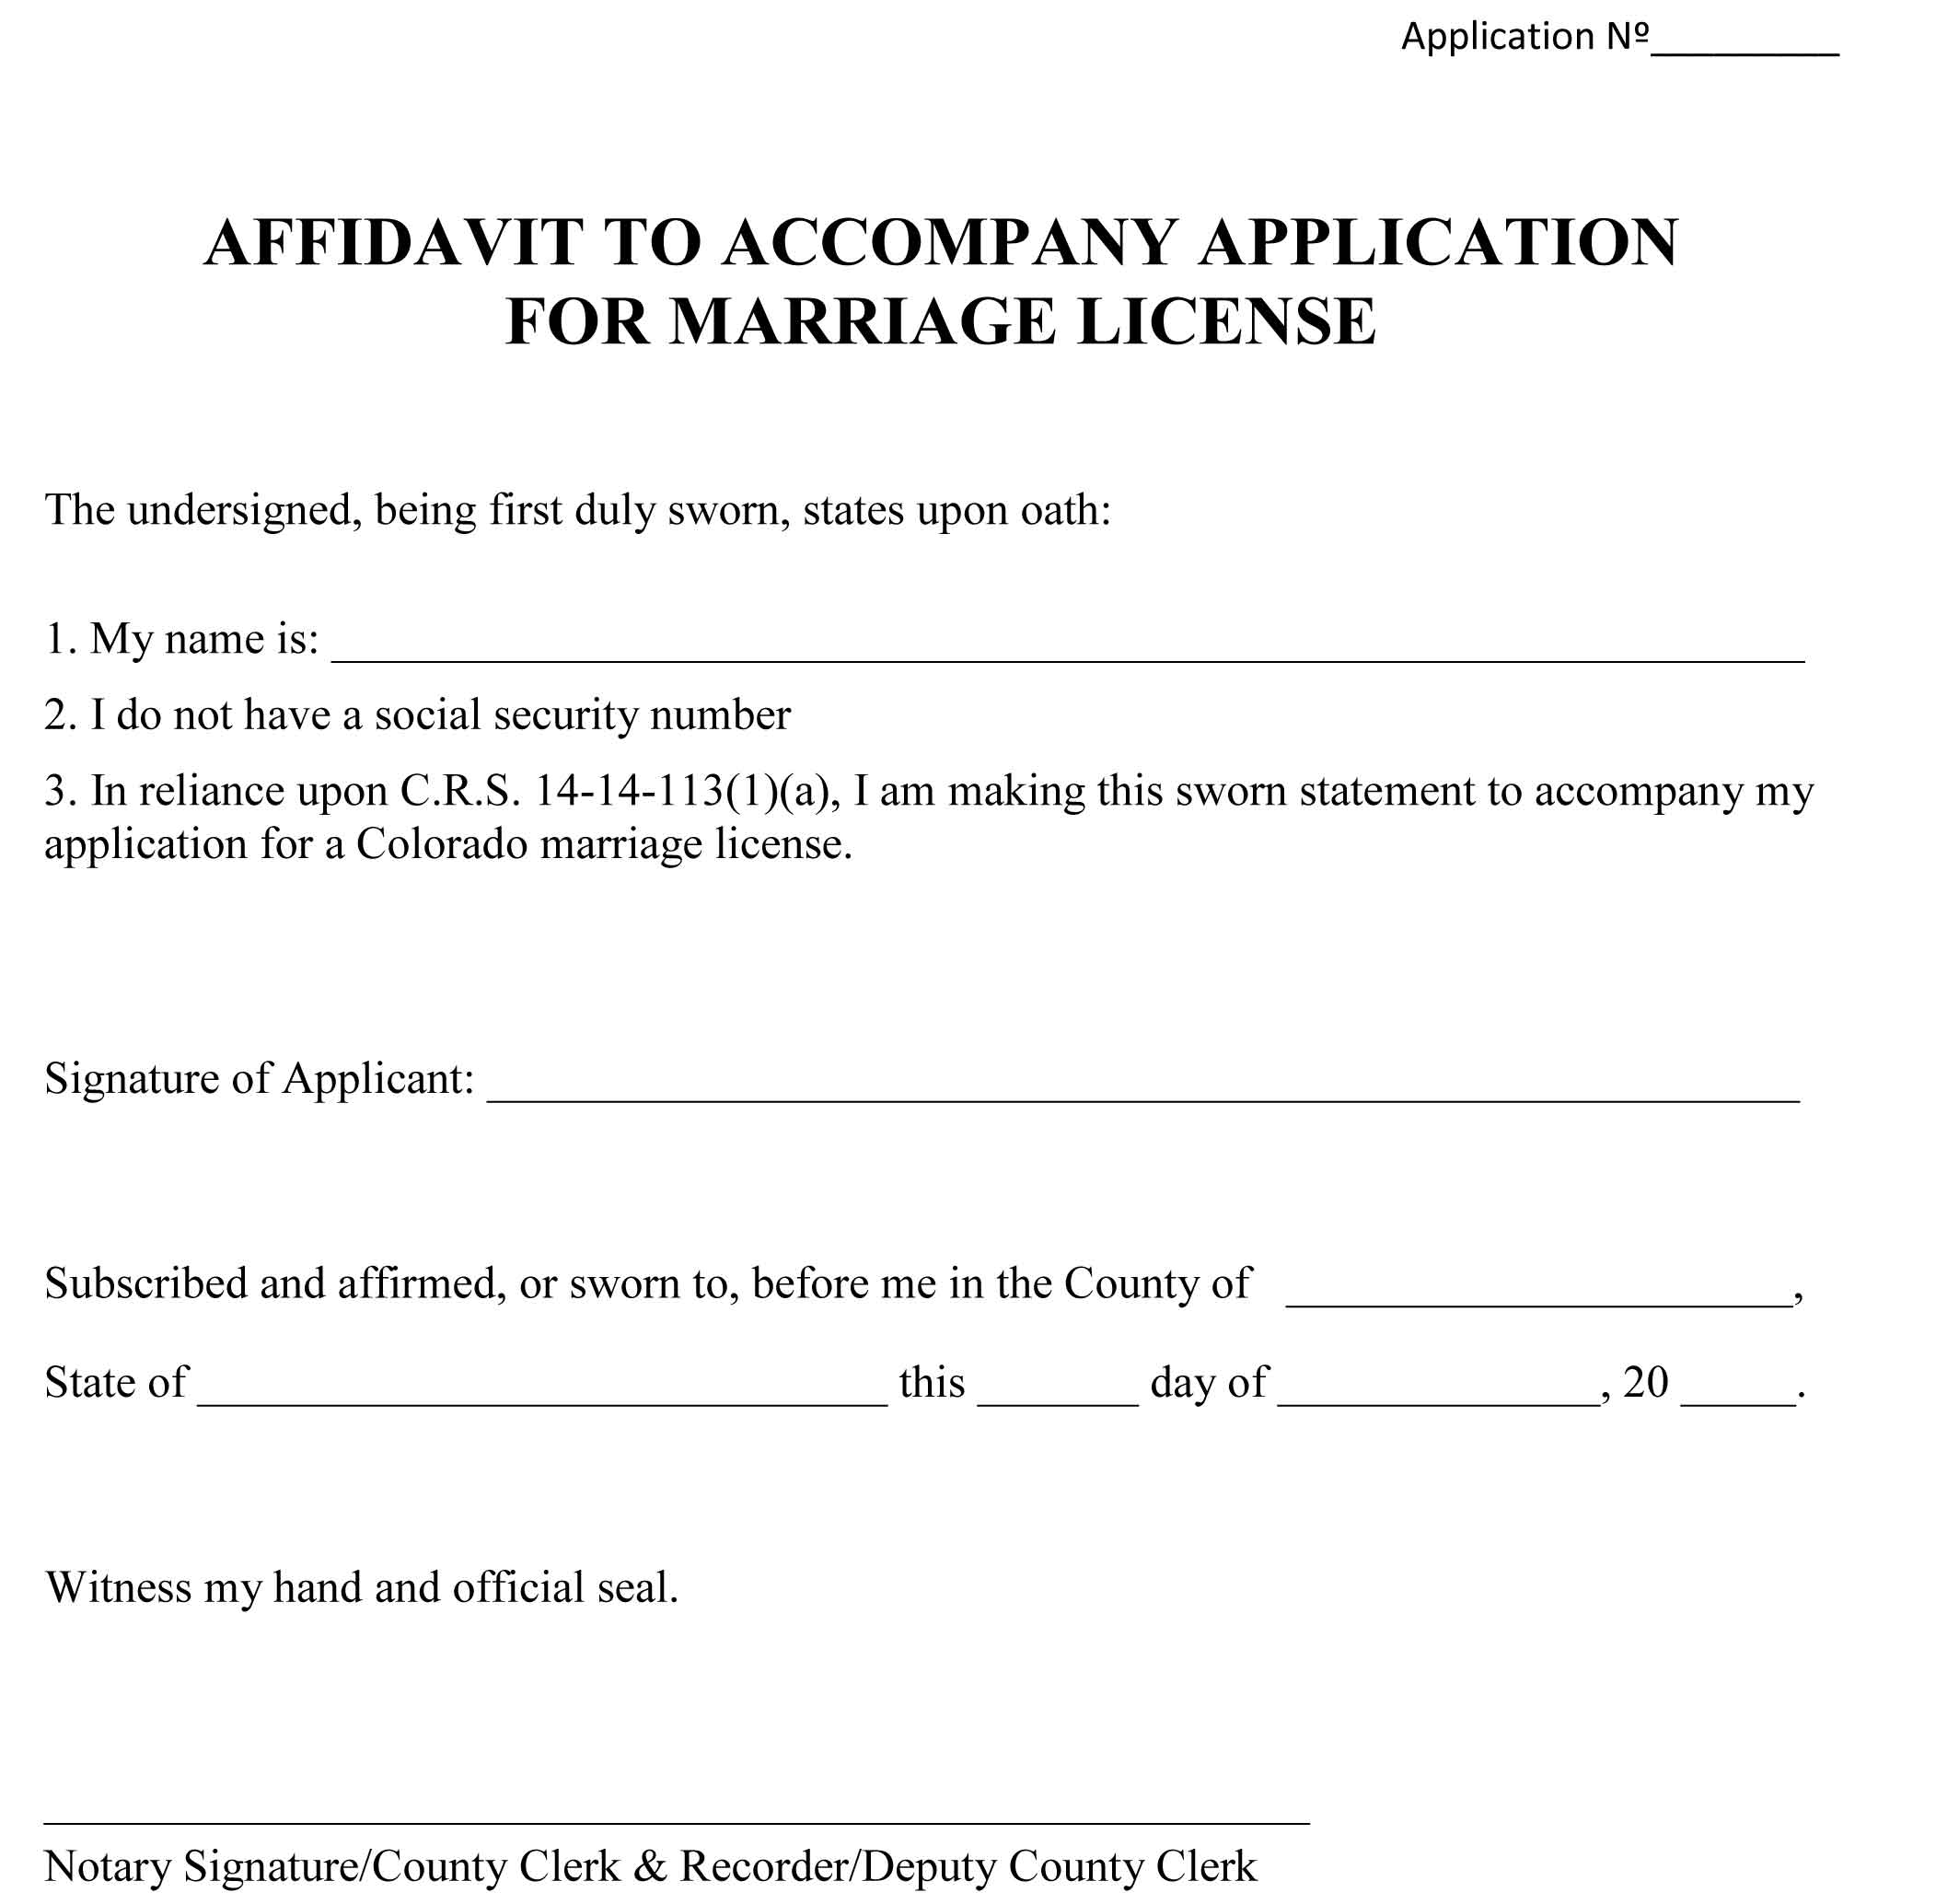 Affidavit To Accompany Application For Marriage License Form Preview  Affidavit Of Sworn Statement